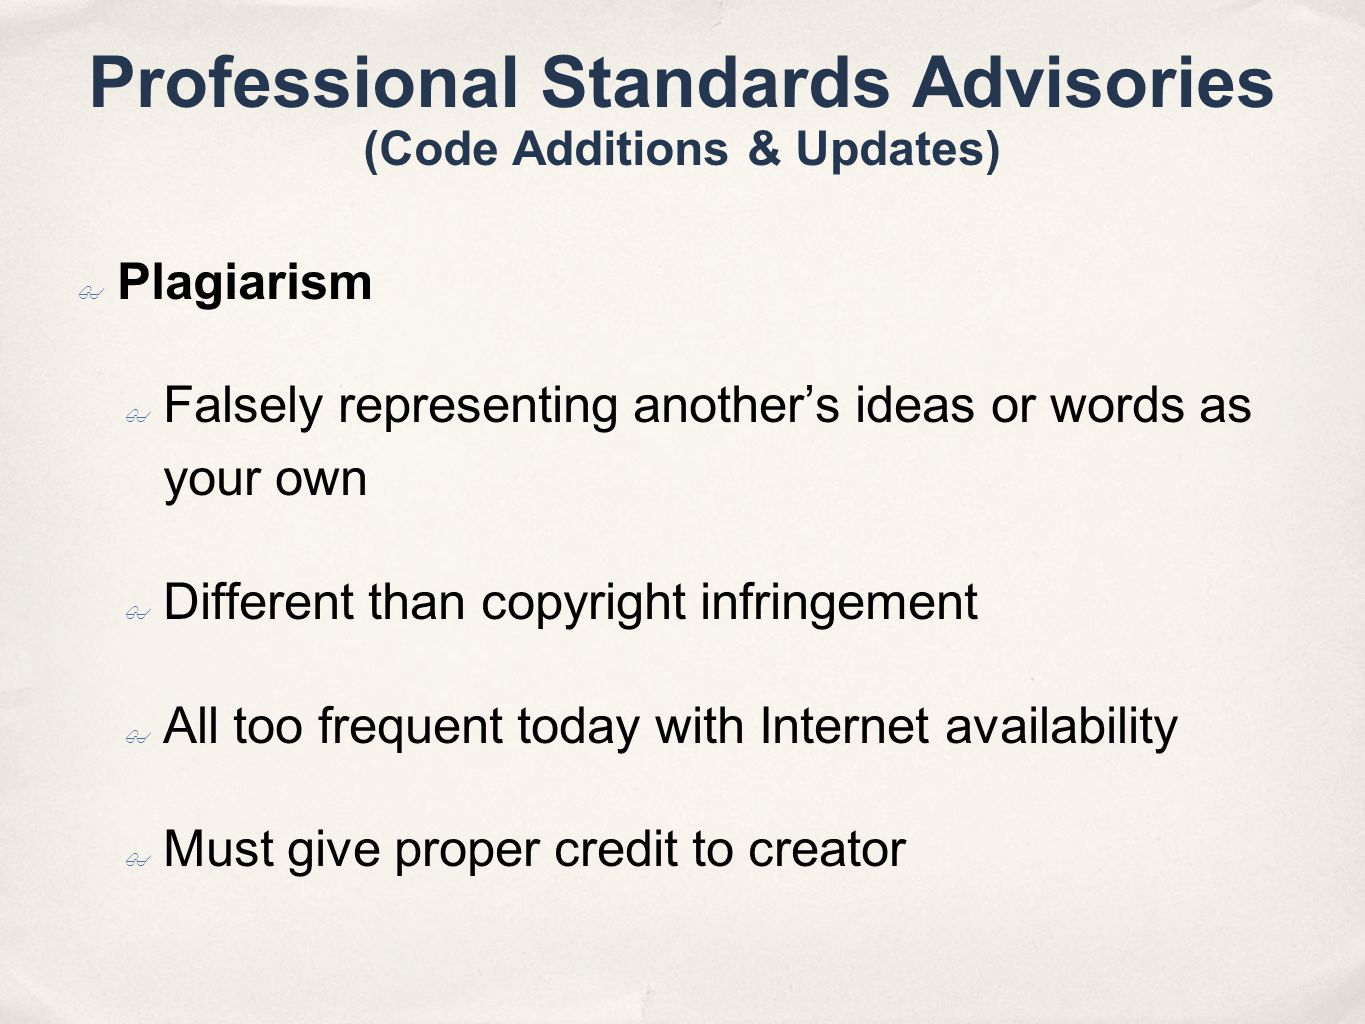 Professional Standards Advisories (Code Additions & Updates) Plagiarism Falsely representing anothers ideas or words as your own Different than copyright infringement All too frequent today with Internet availability Must give proper credit to creator